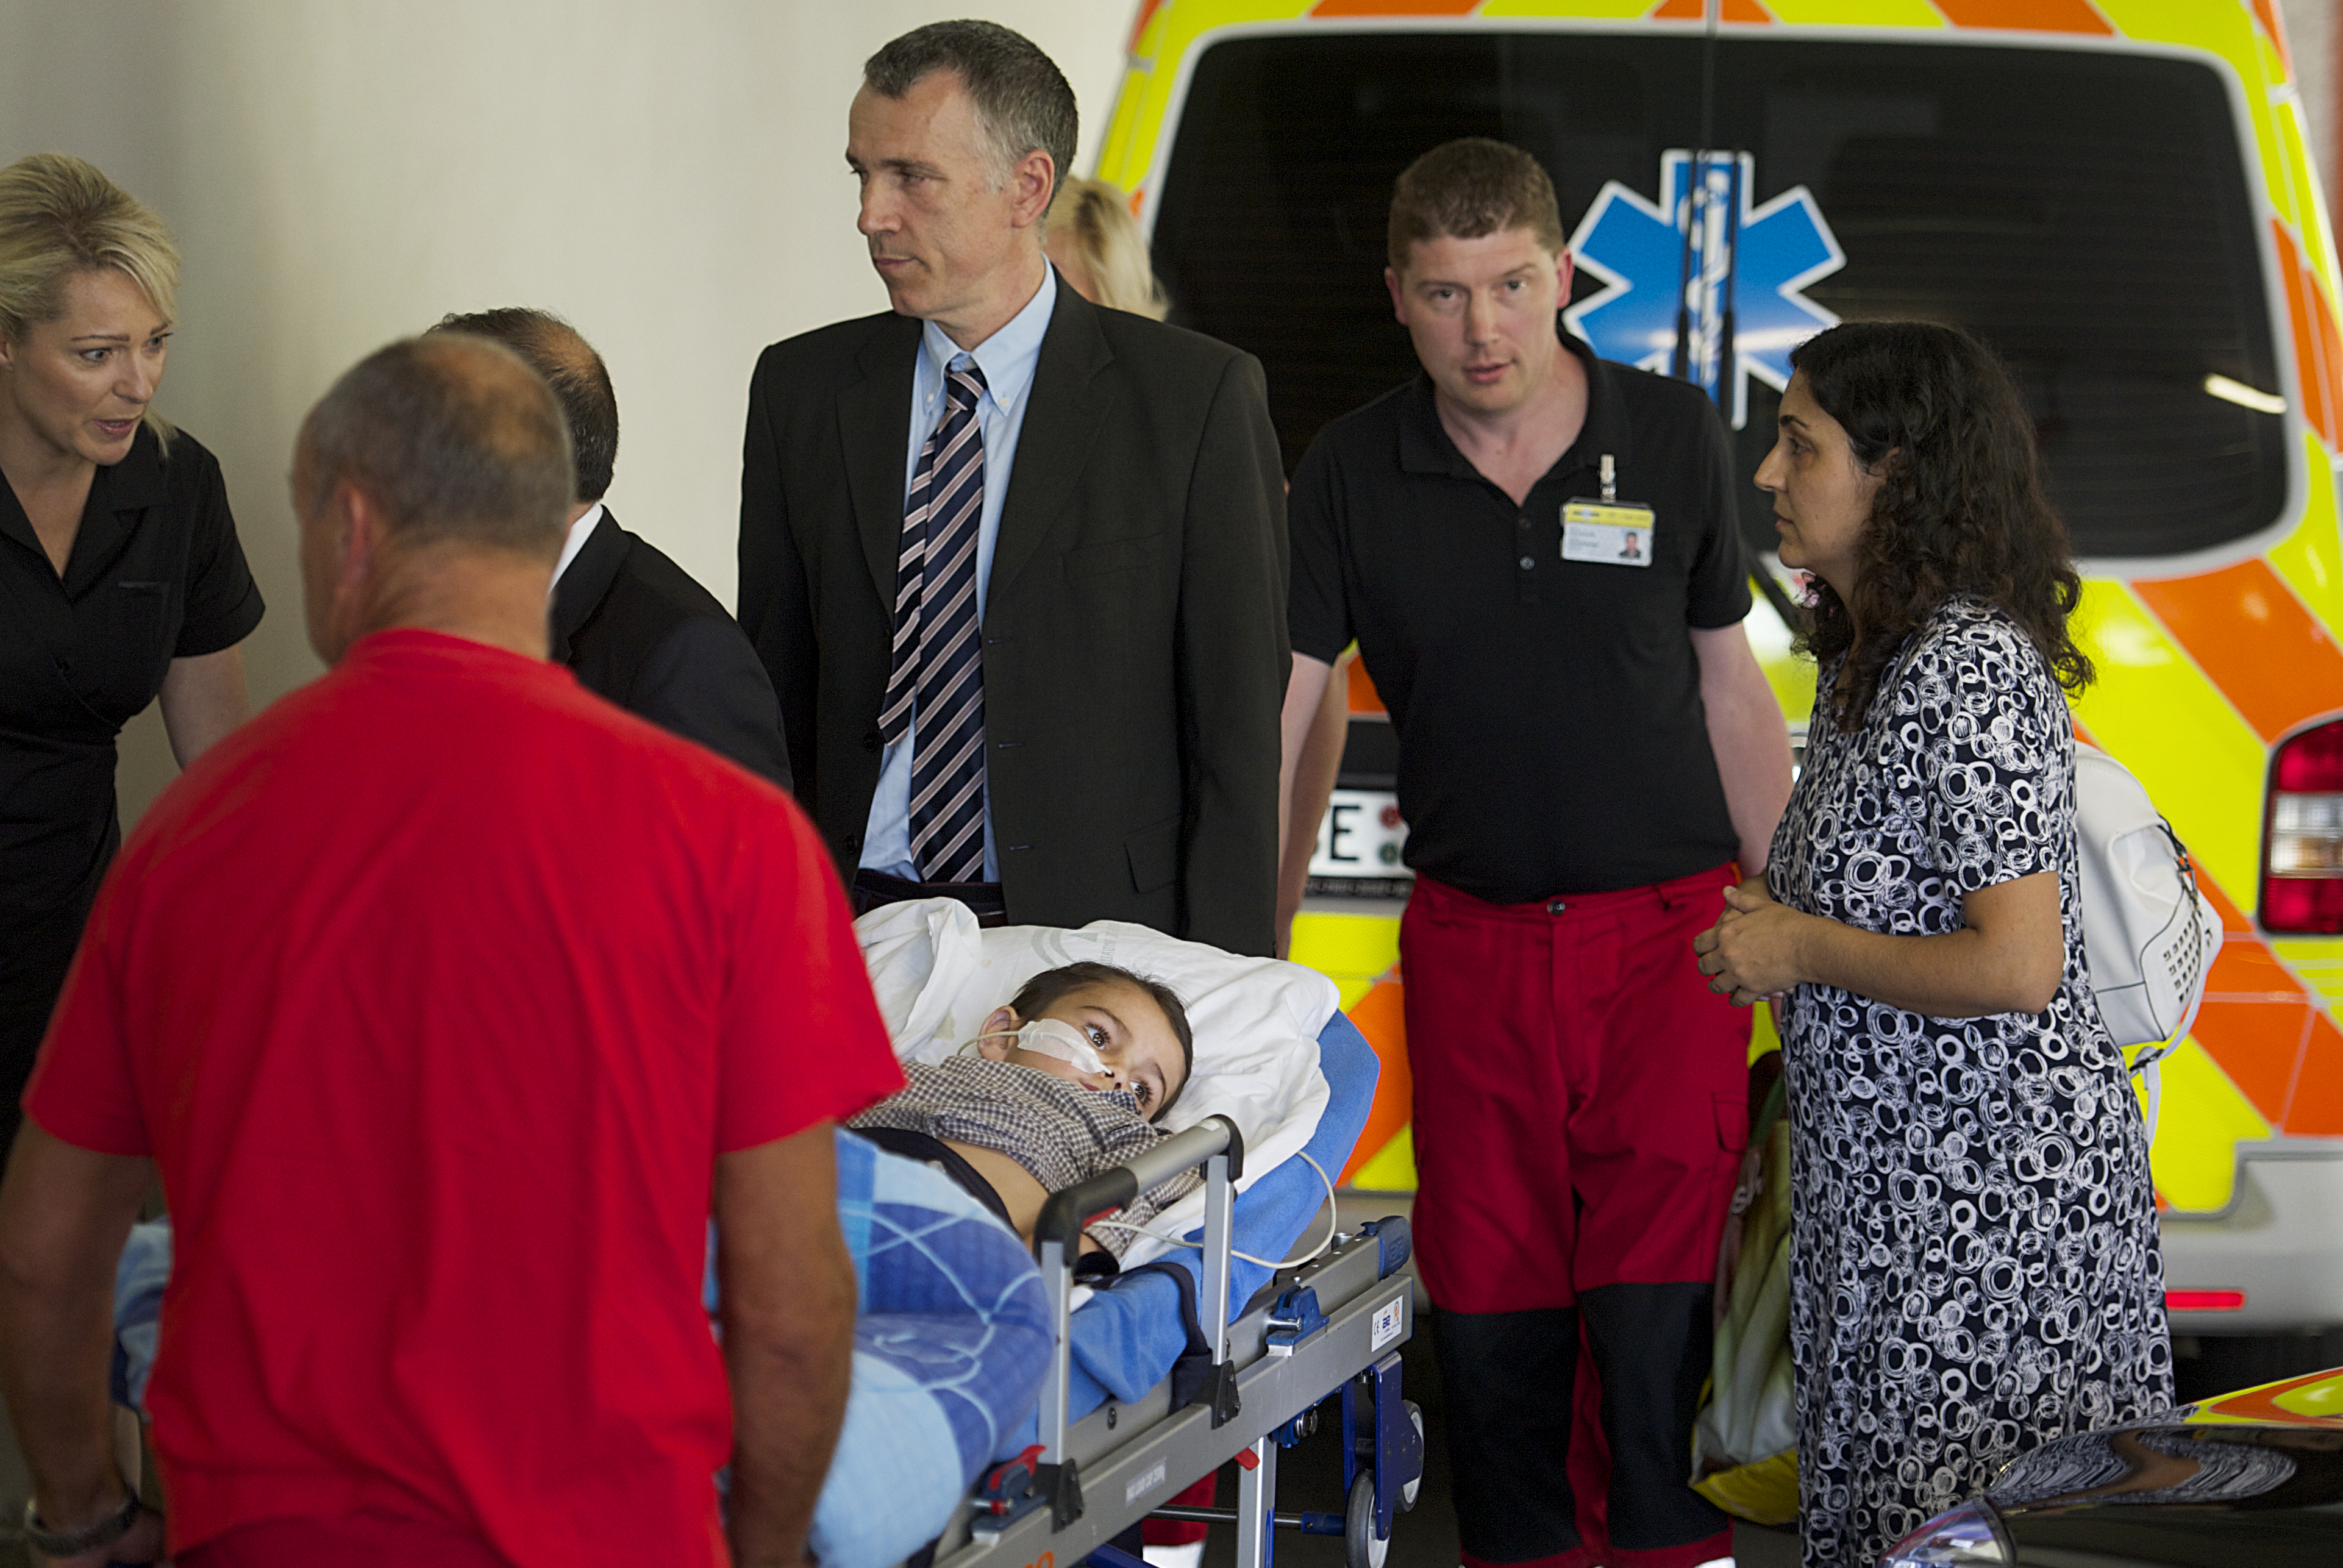 Five-year-old Ashya King is accompanied by his parents Brett, left, and Naghmeh King, right, on his arrival at the Motol hospital in Prague on Sept. 8, 2014